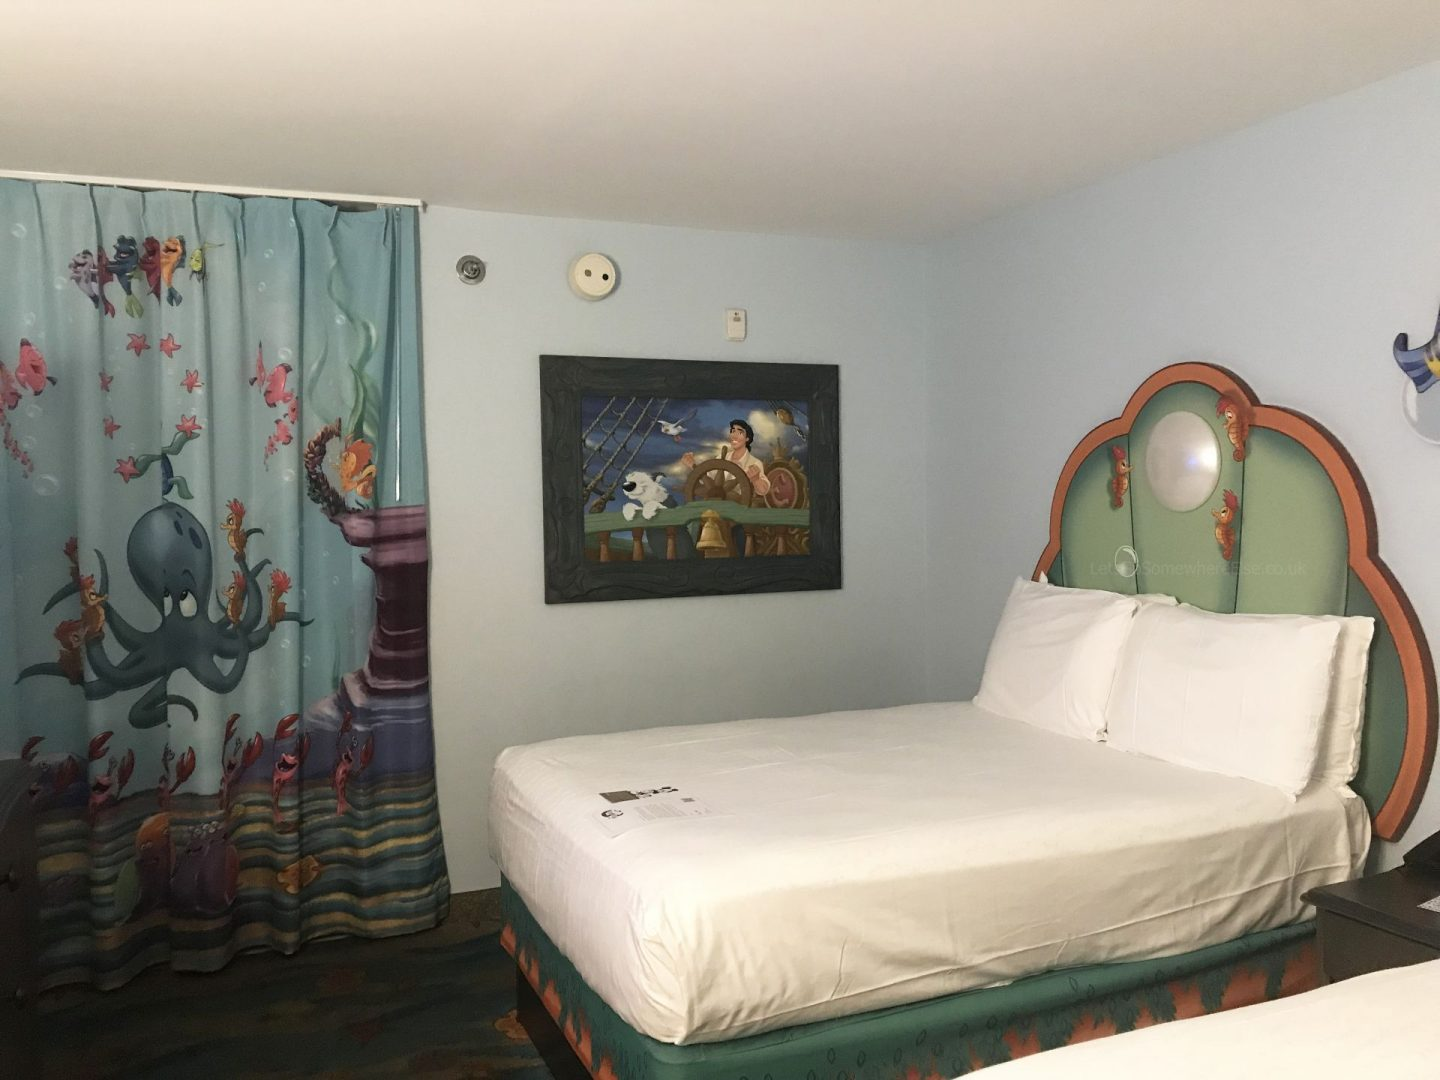 Disney World Art Of Animation Ariel Hotel Room